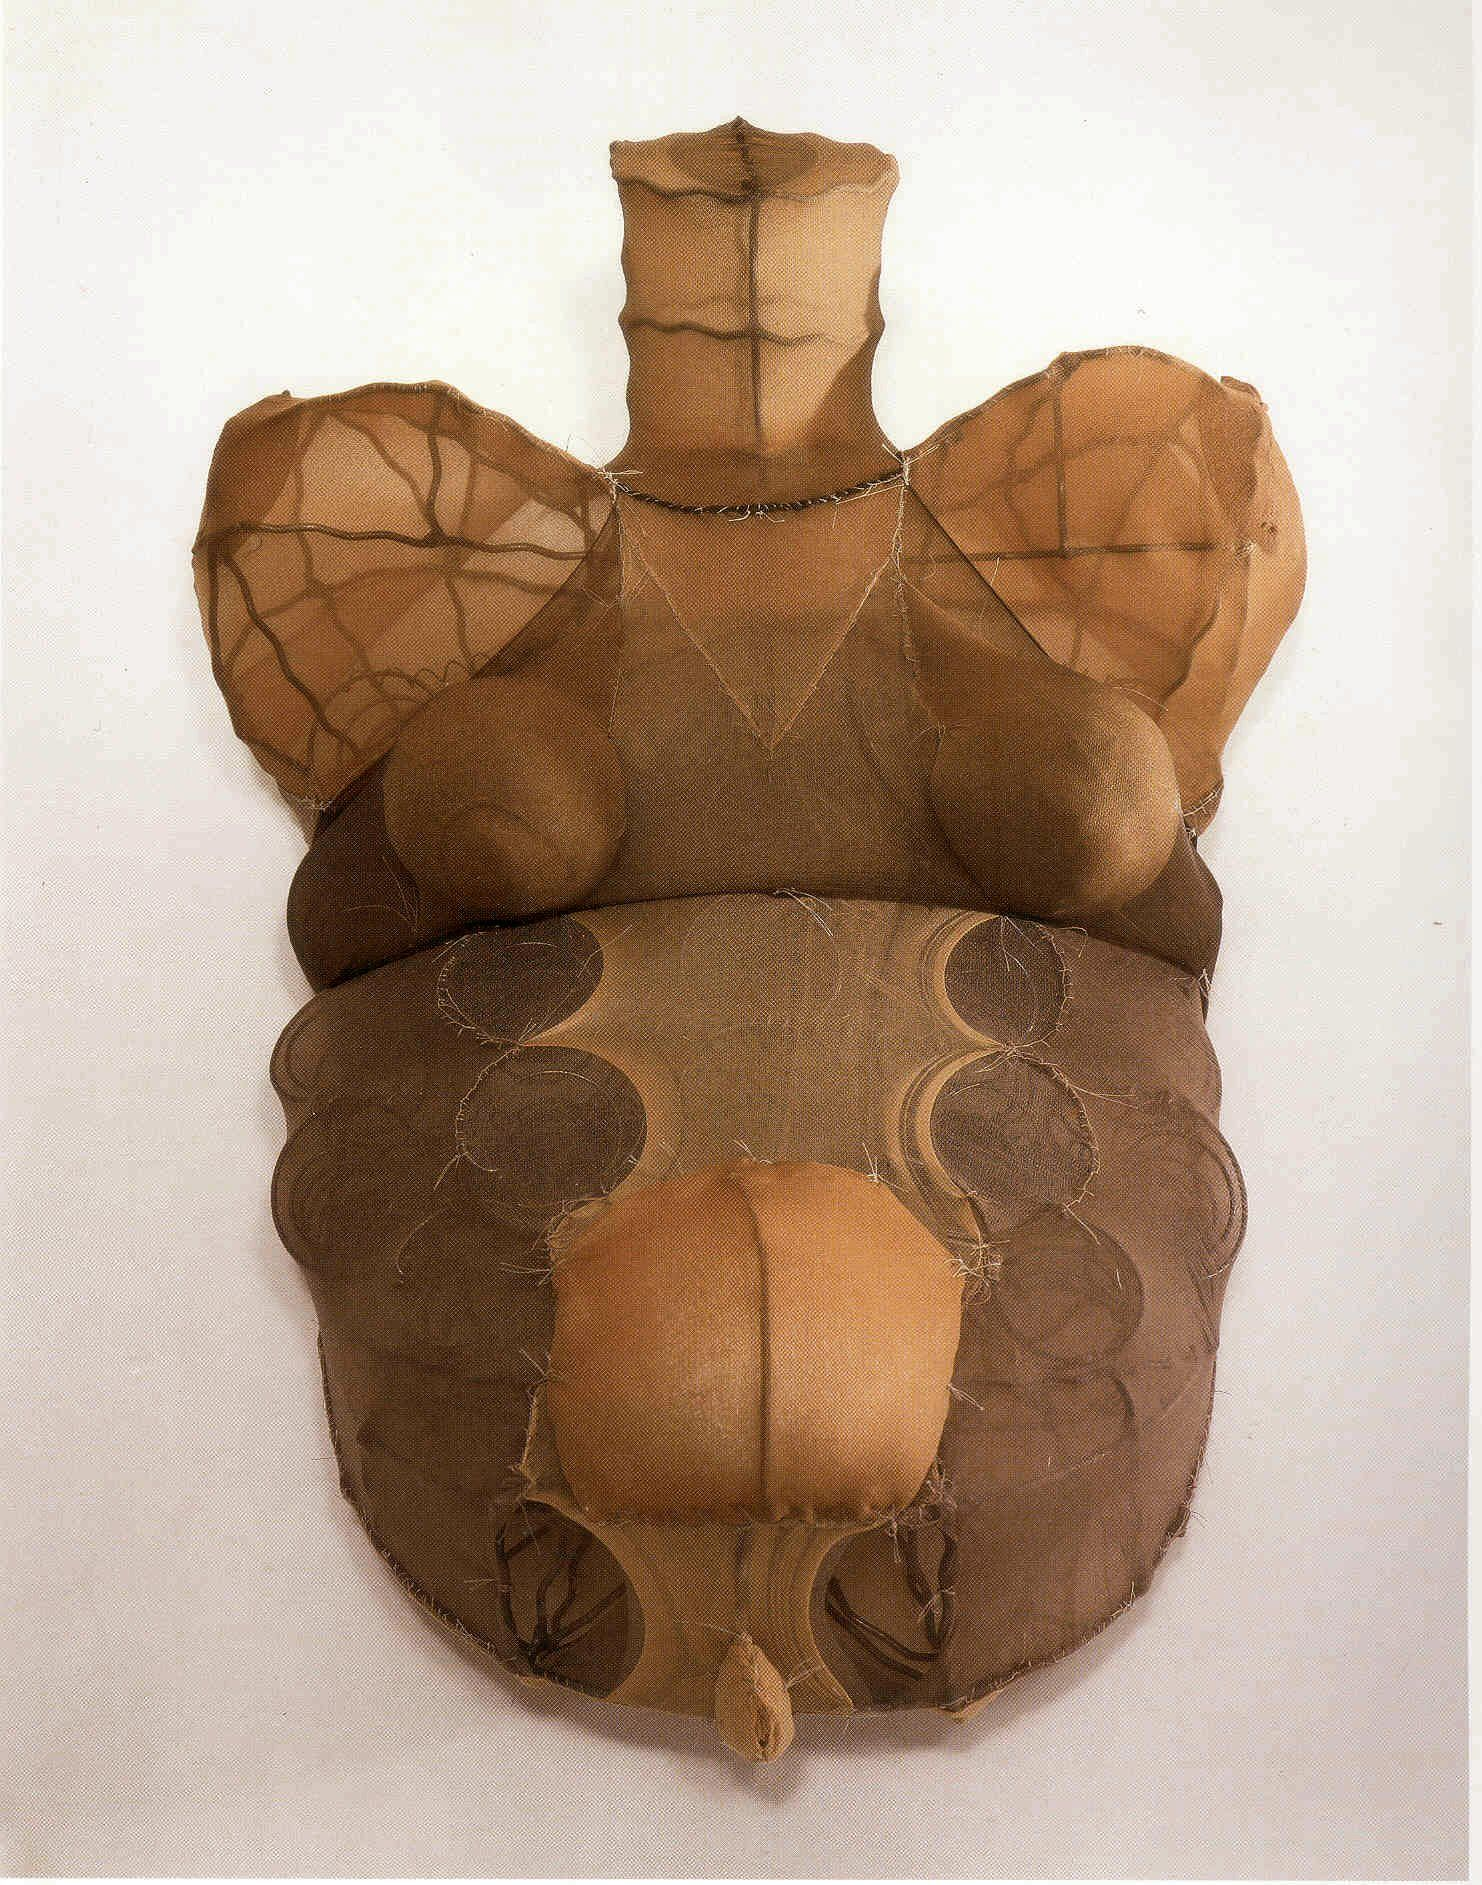 Louise Bourgeois.  Untitled 1998. Fabric and steel, 10 x 25 1/2 x 18 inches.